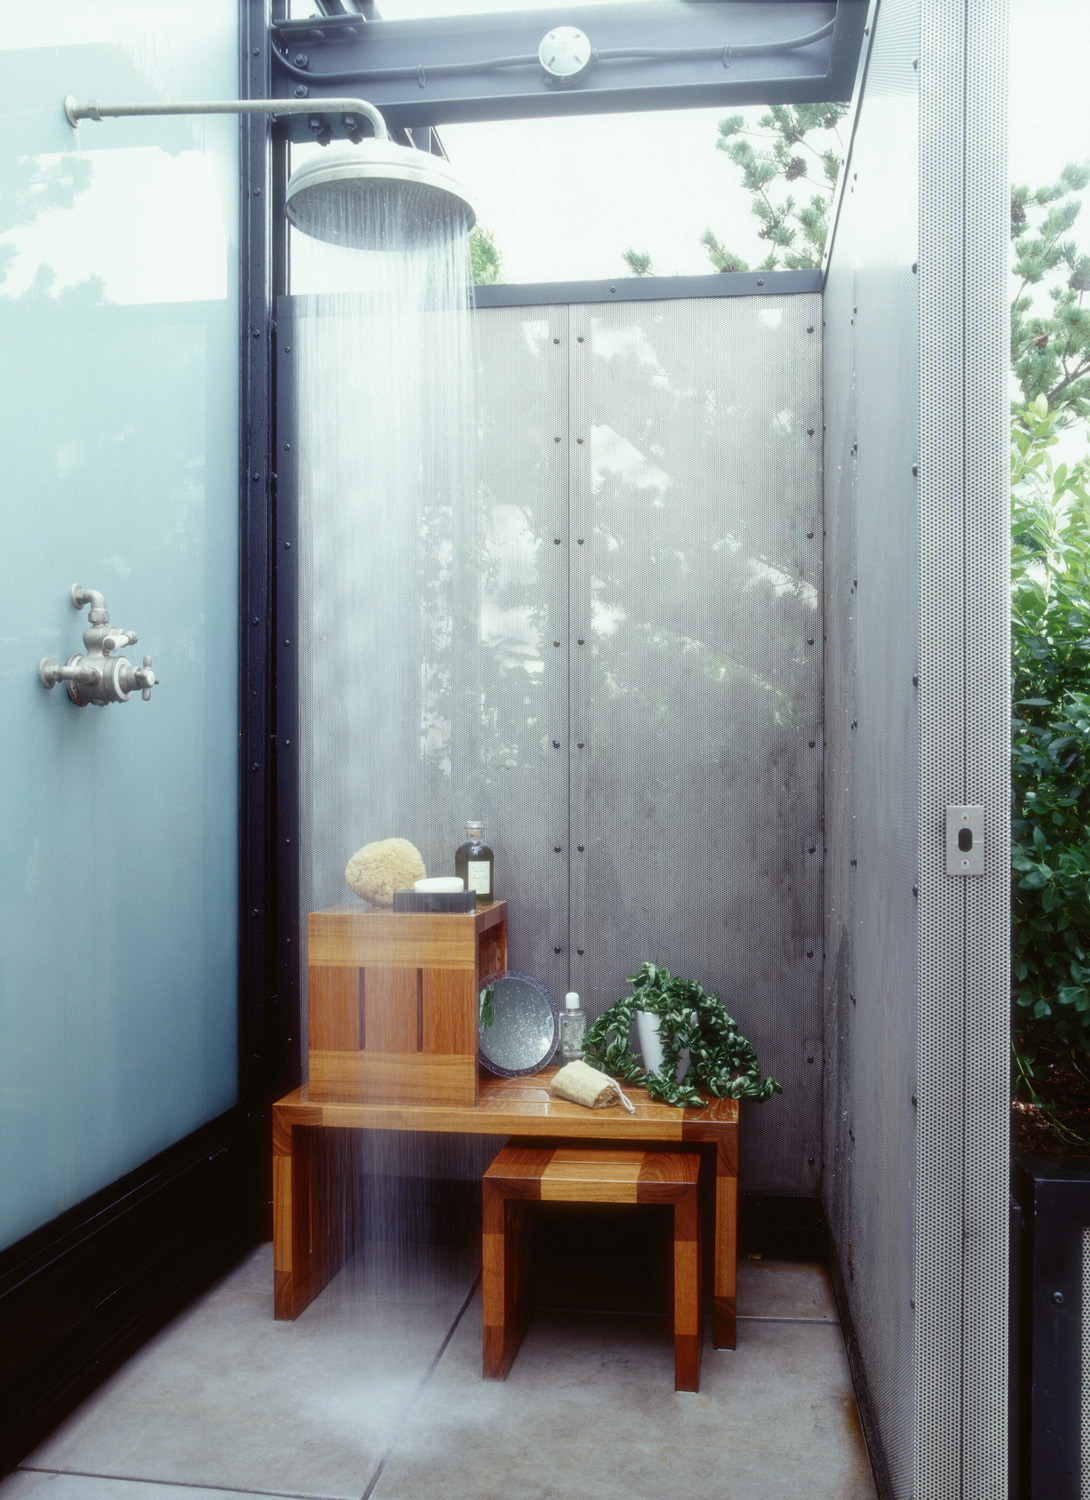 Outdoor Shower On A New York Rooftop Photo Courtesy Of Sawyer Berson Architecture Landscape